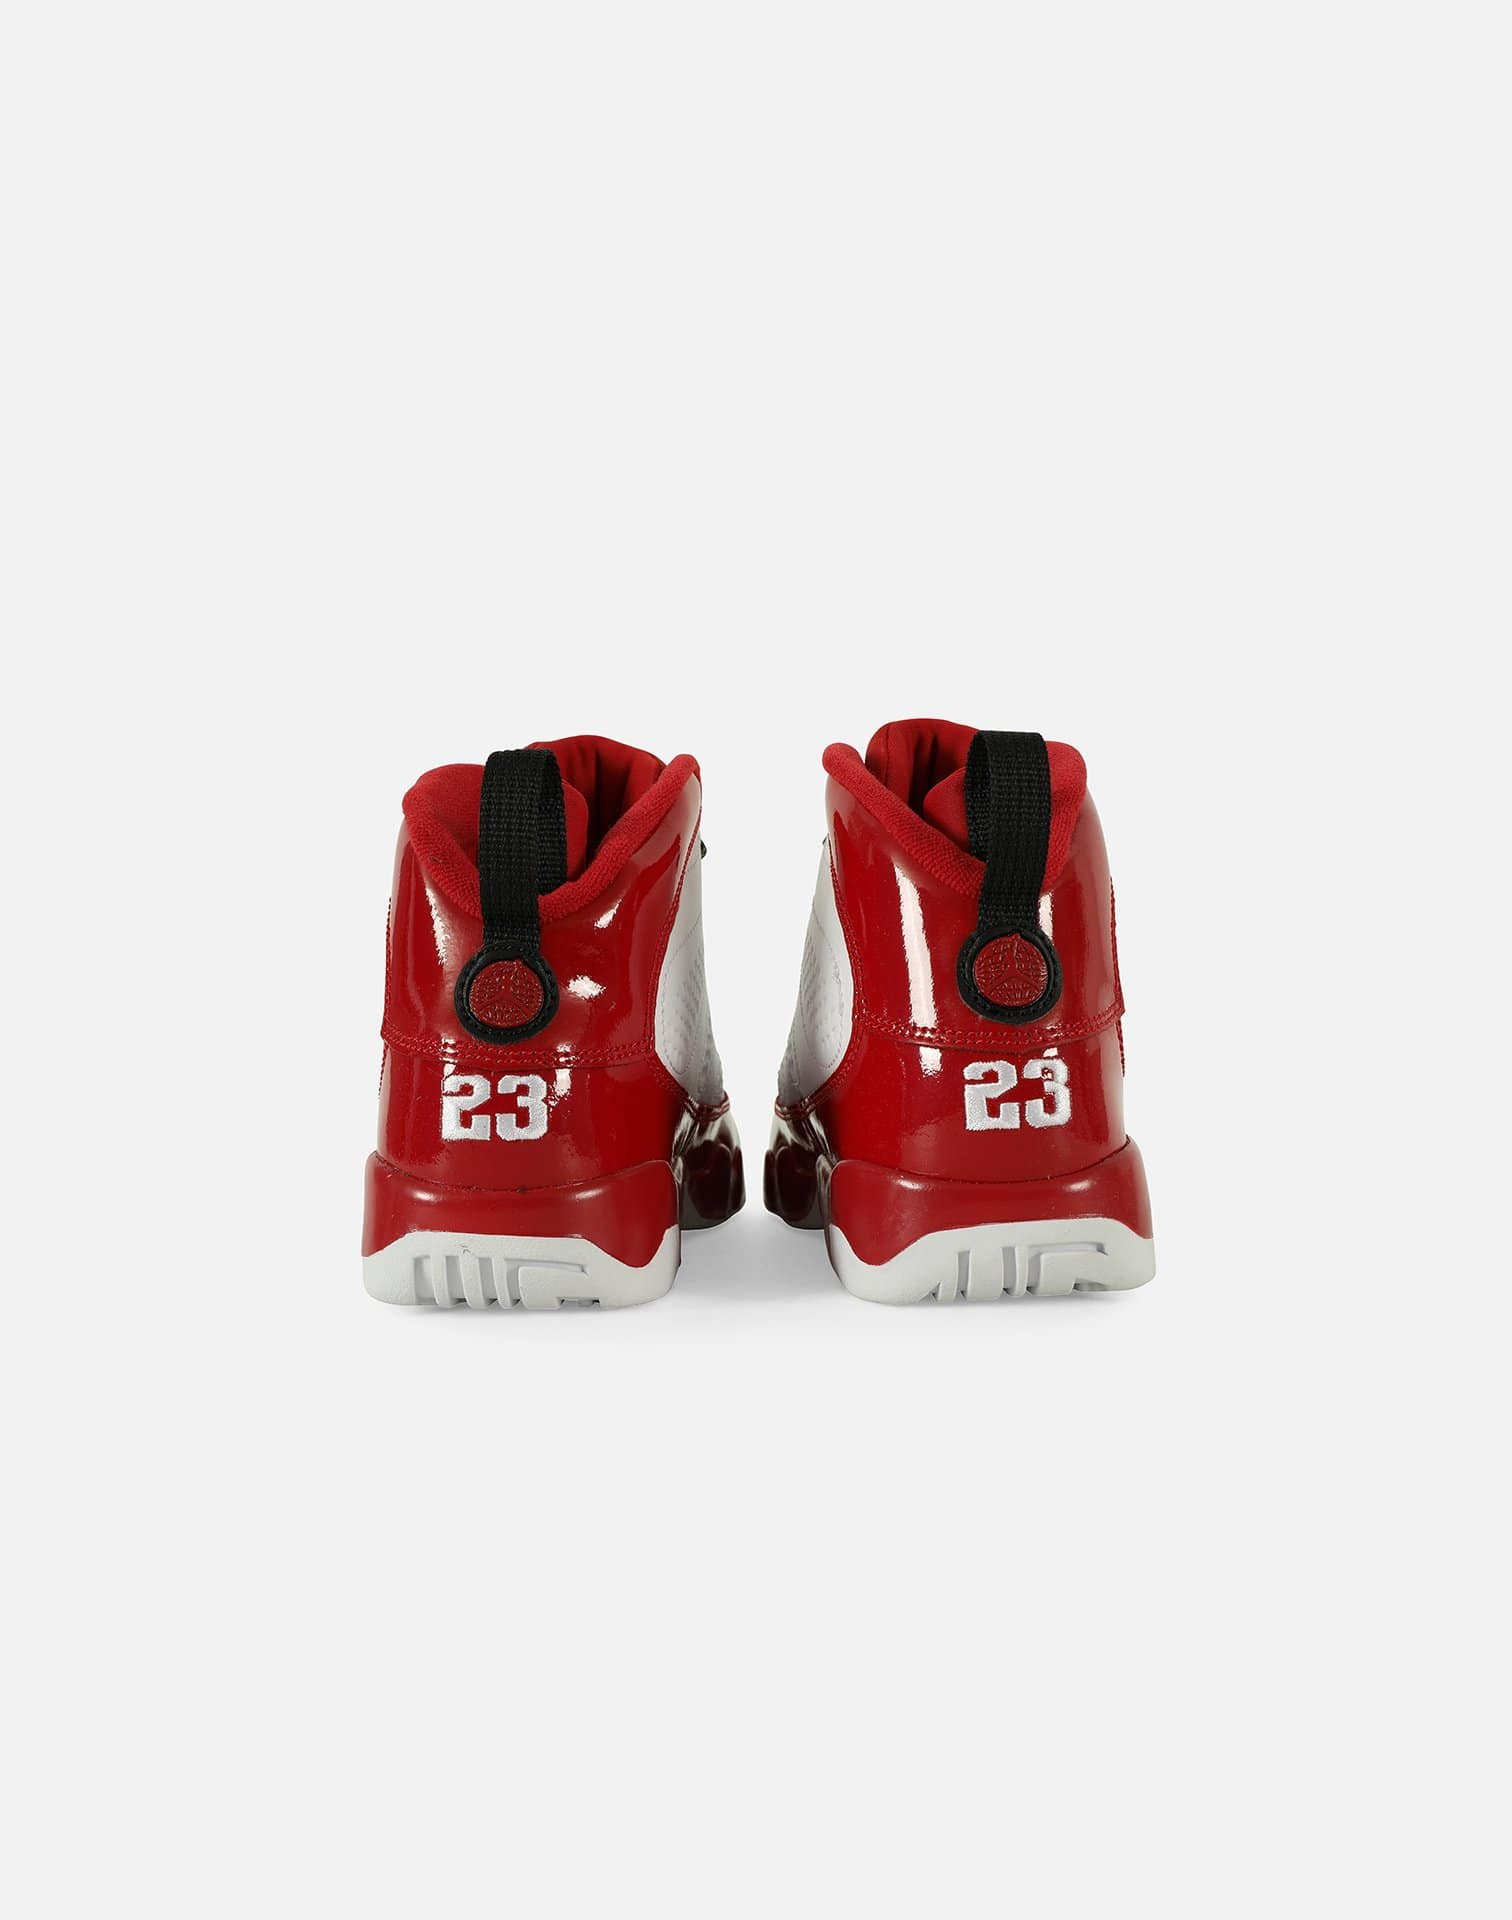 Jordan Air Jordan Retro 9 'Gym Red' Pre-School